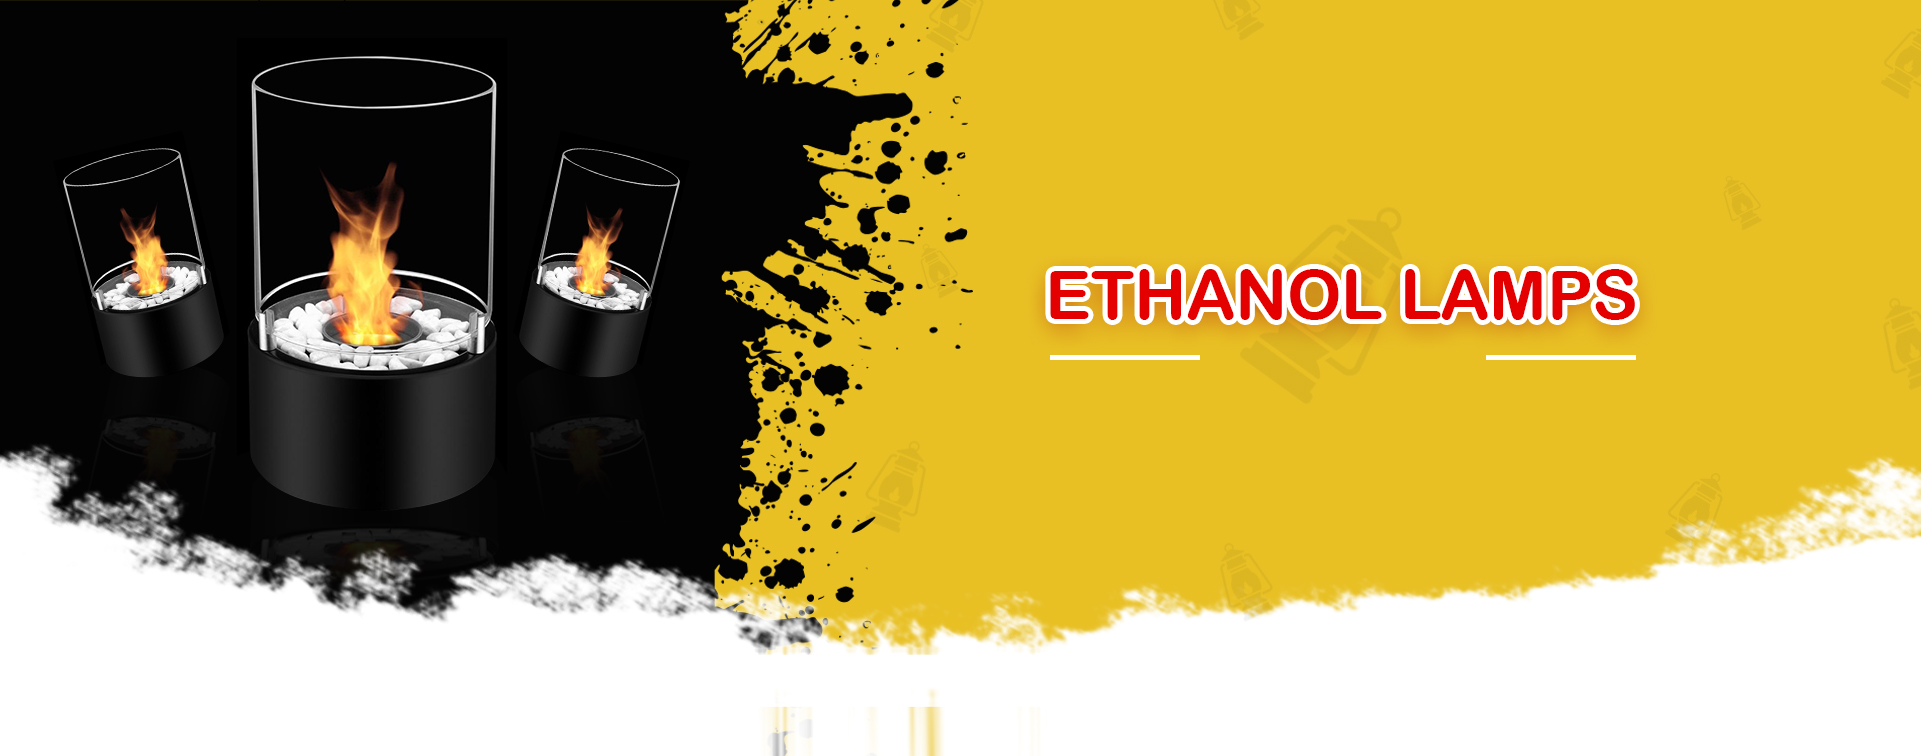 Ethanol Lamp @Wallasia Pvt Ltd